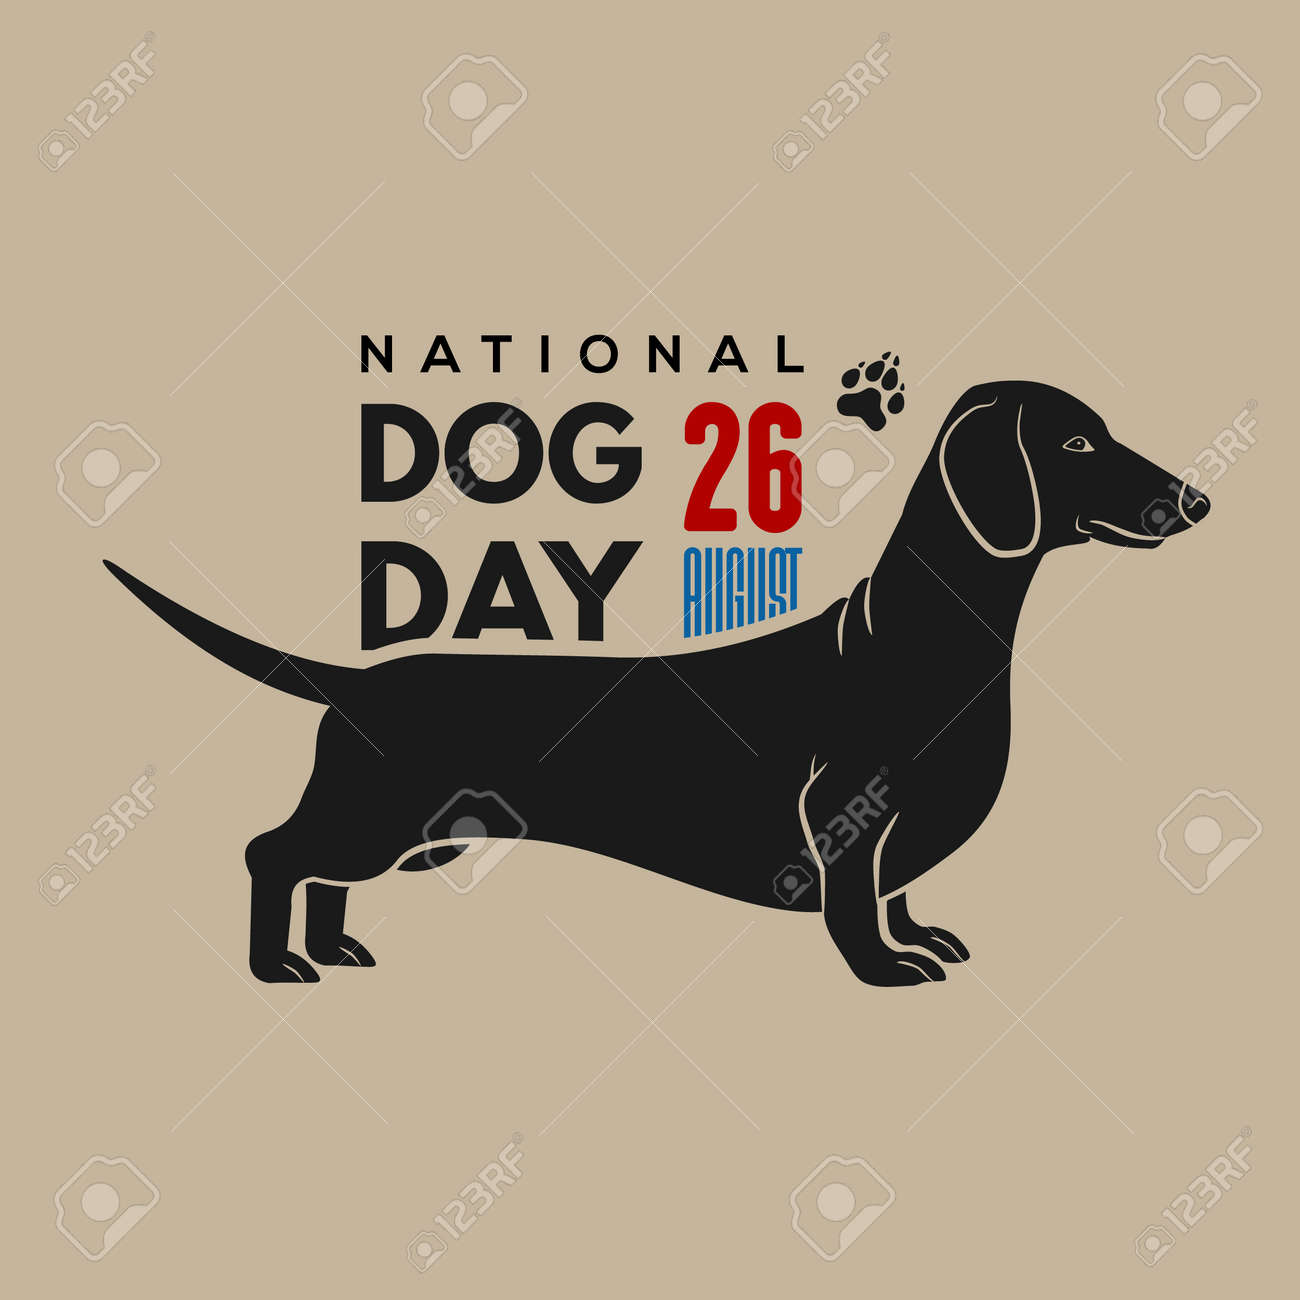 National Dog Day poster or banner design template - 171746956